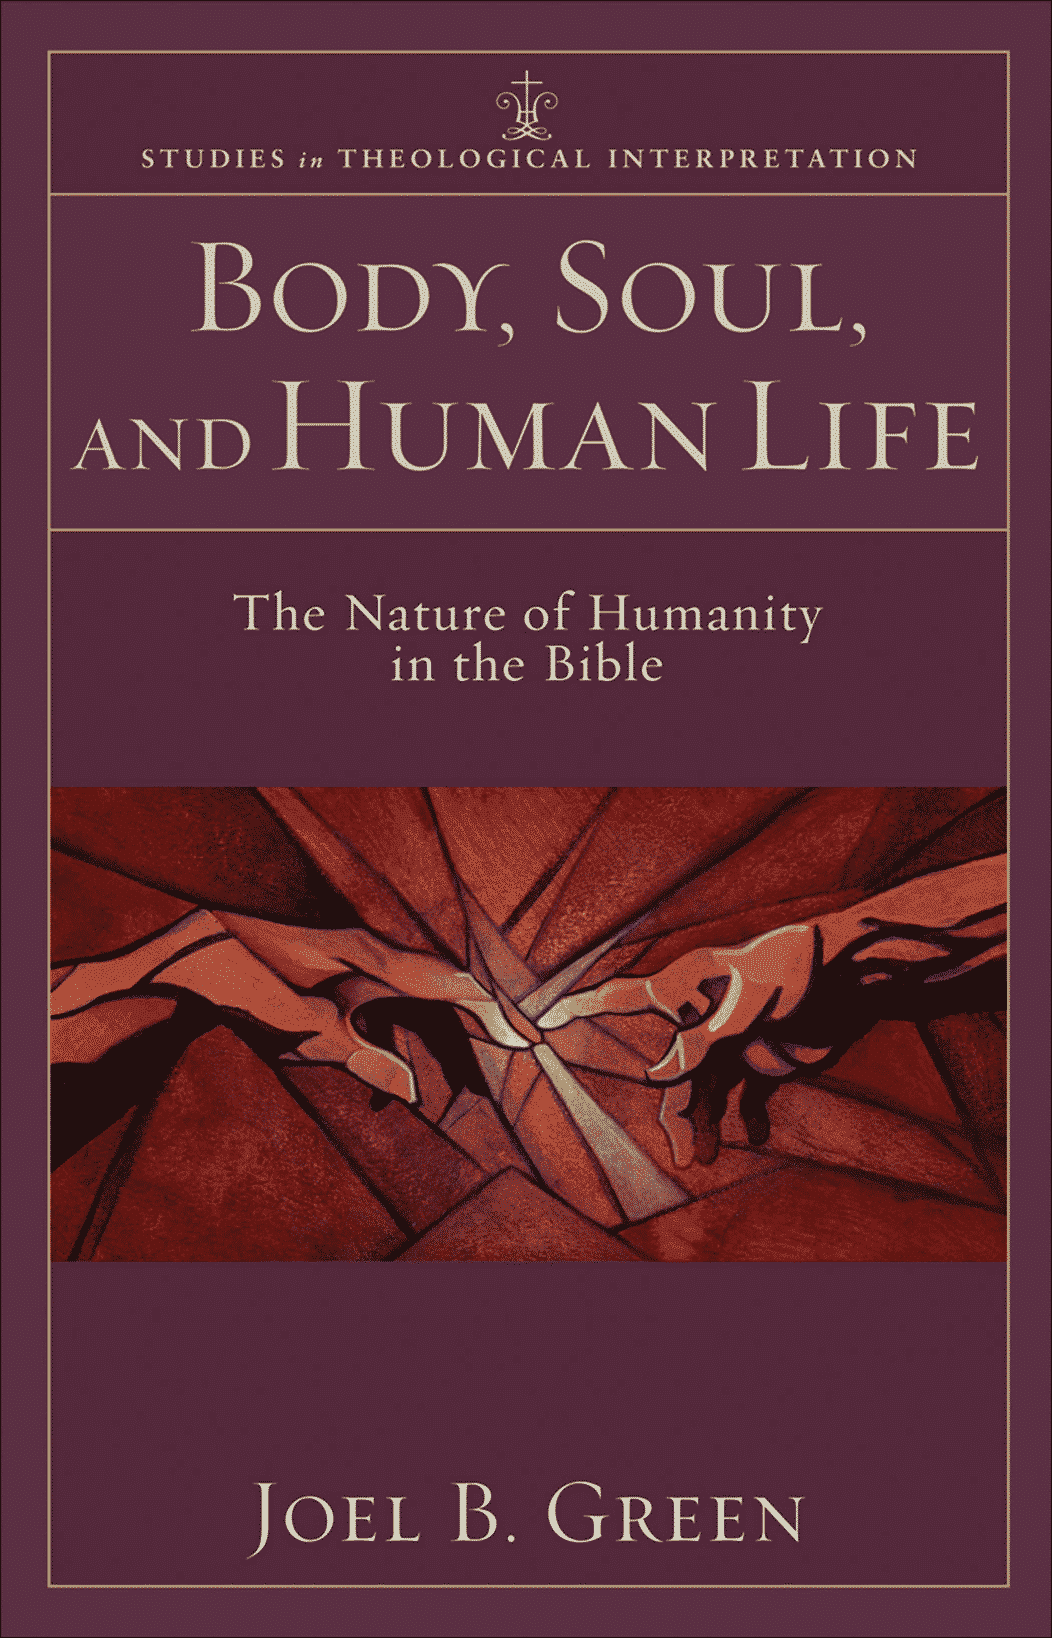 Review of Body Soul and Human Life